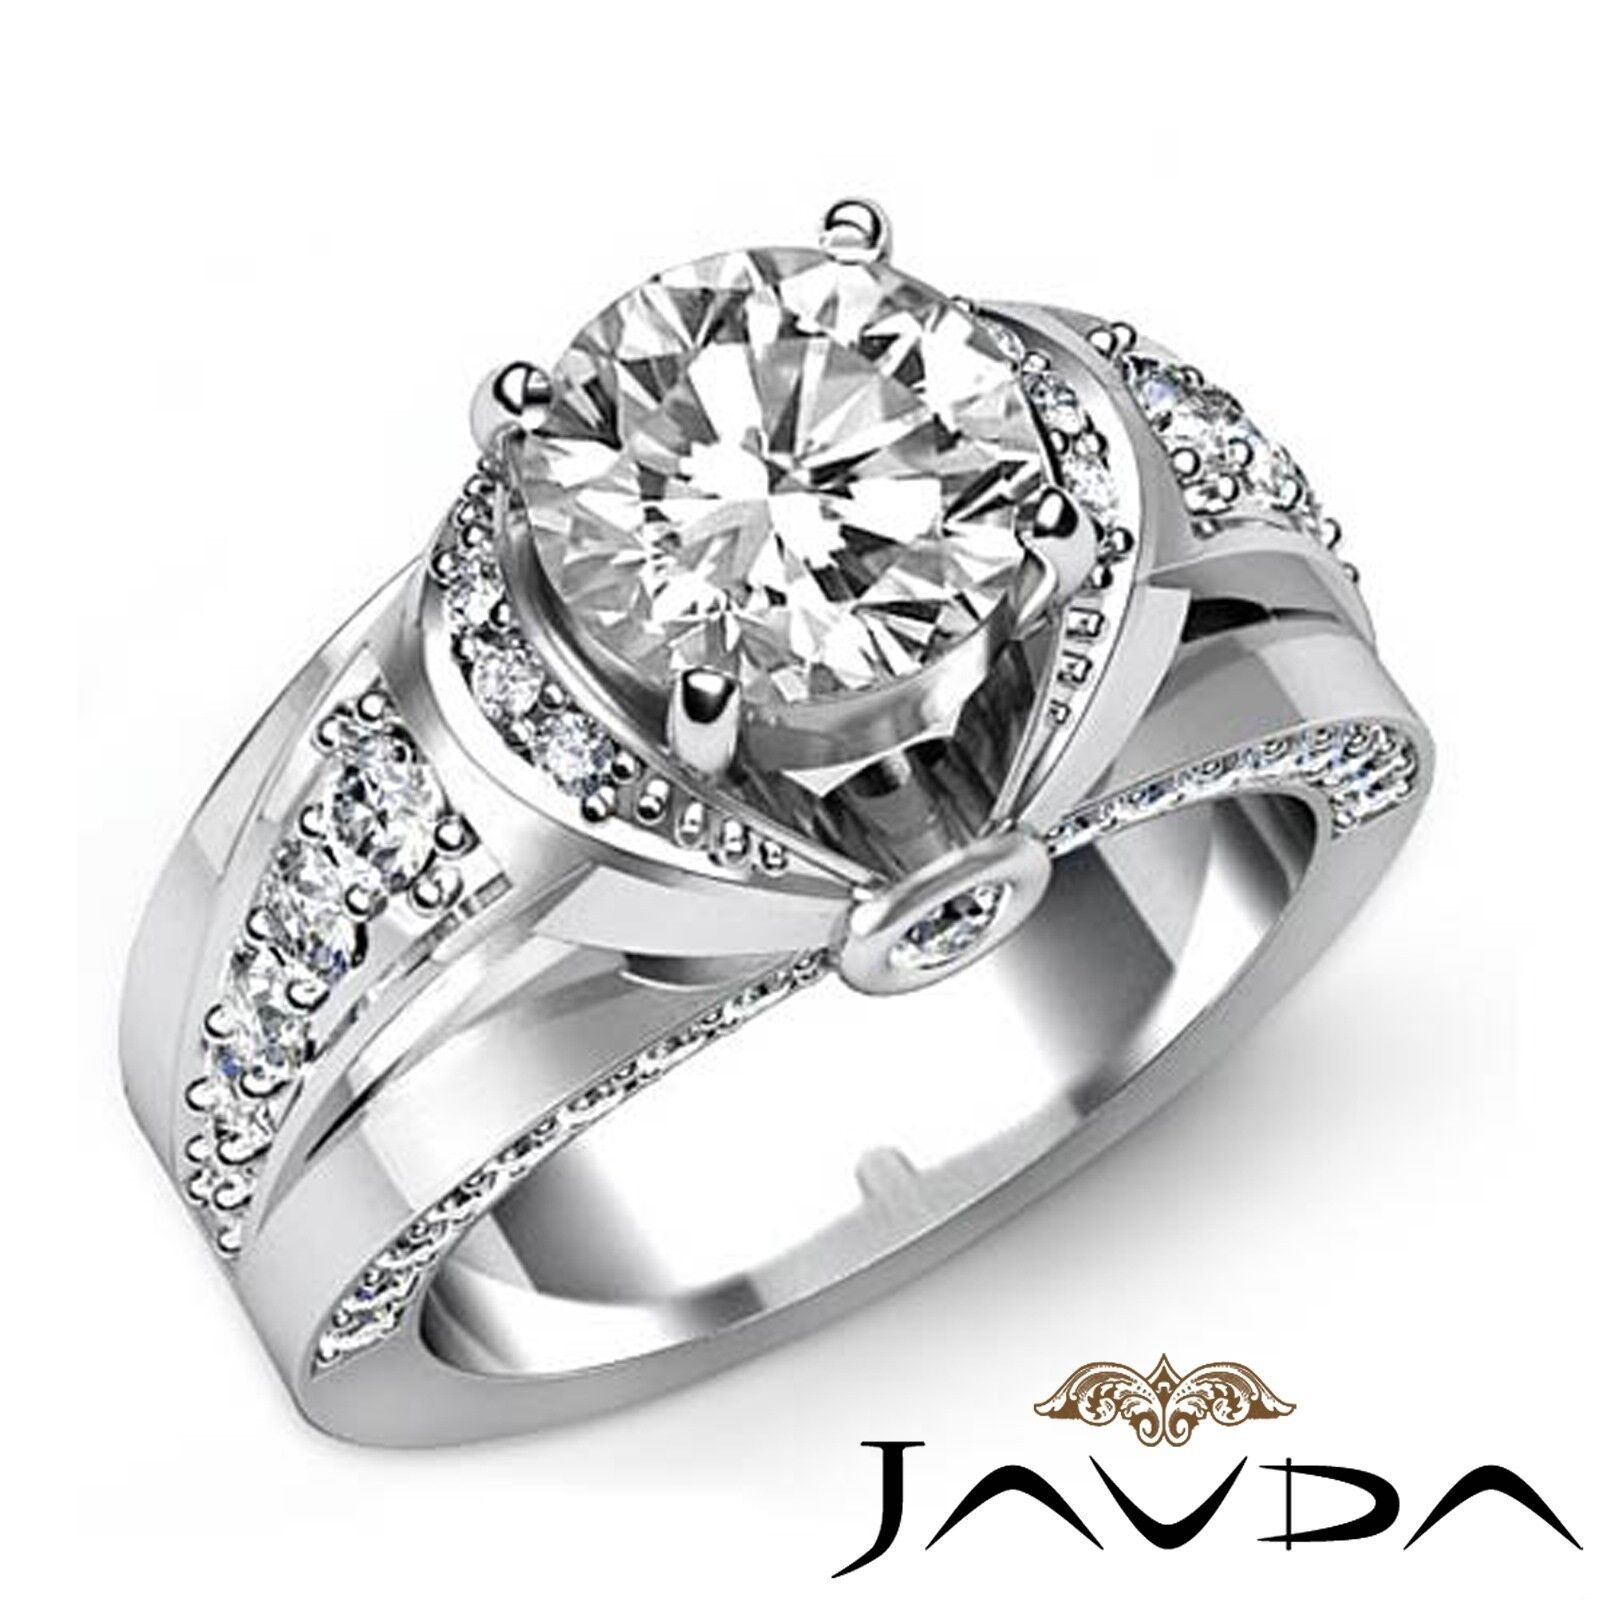 2.6ctw Knot Style Classic Sidestone Round Diamond Engagement Ring GIA H-SI1 Gold